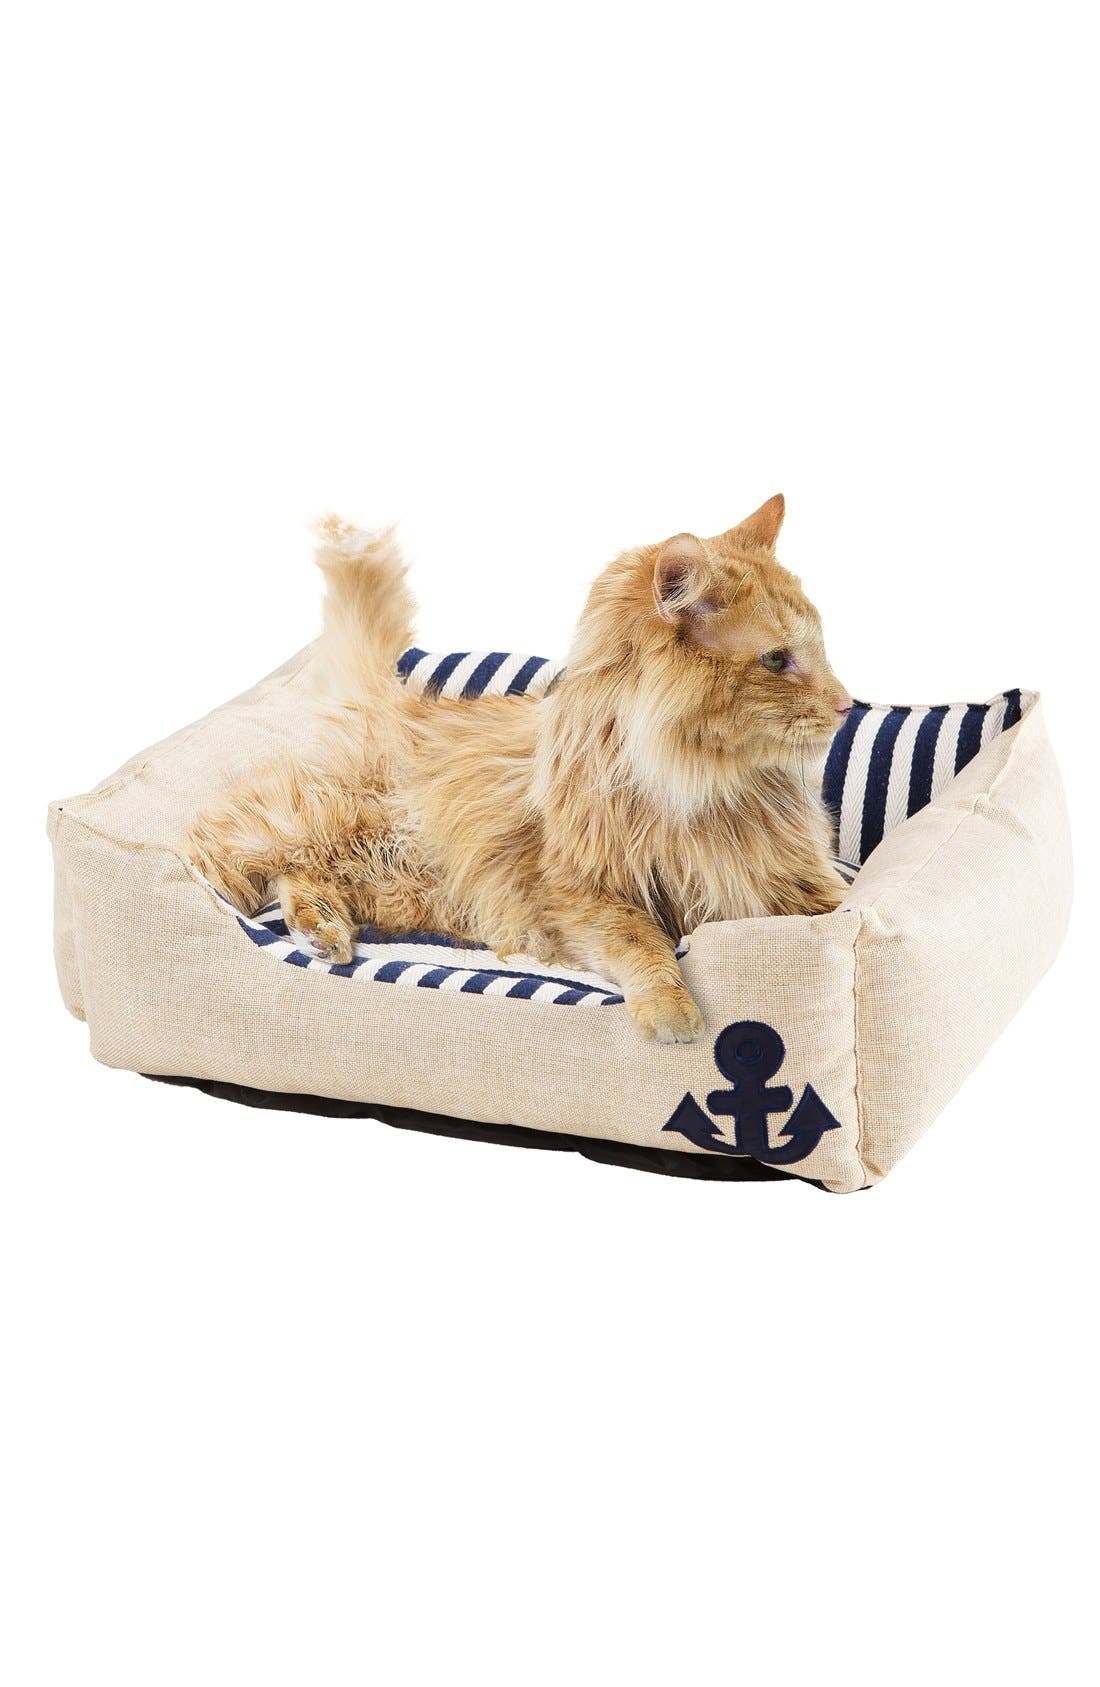 Alternate Image 1 Selected - Duck River Textile Everly Nautical Pet Bed